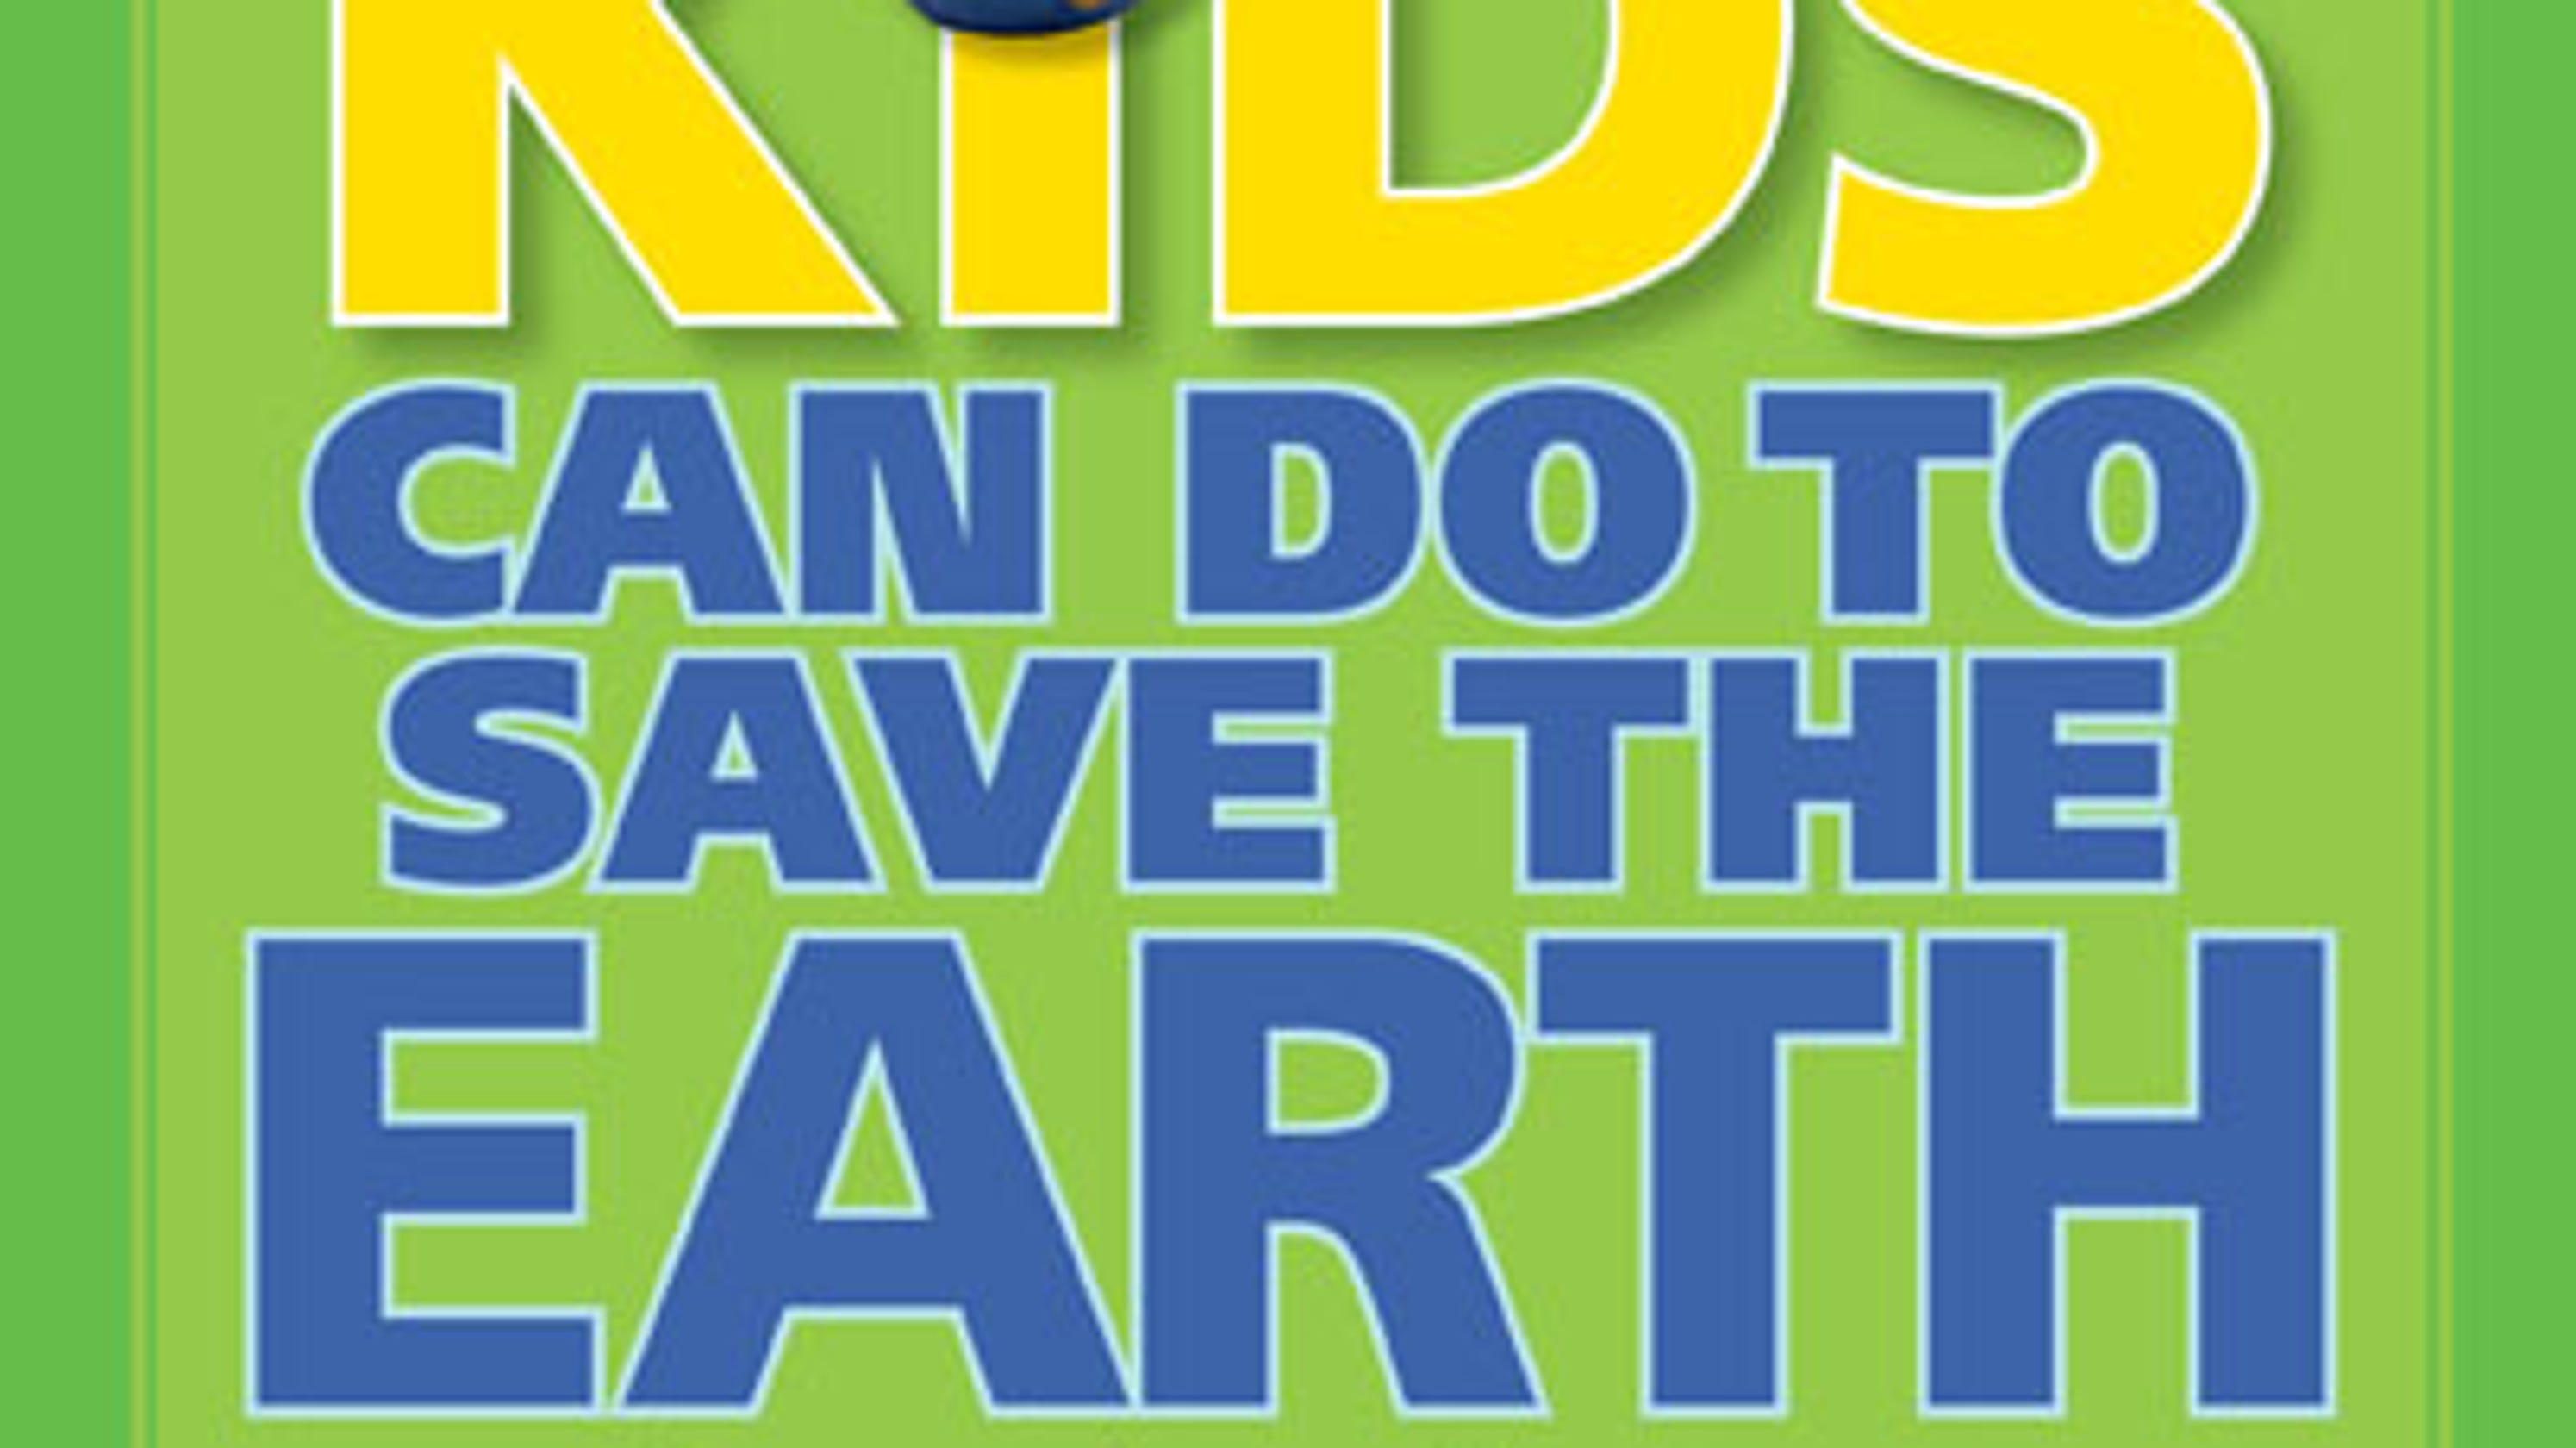 A popular '90s book told kids how to save Earth with 'simple things.' Today's kids say more is needed - USA TODAY